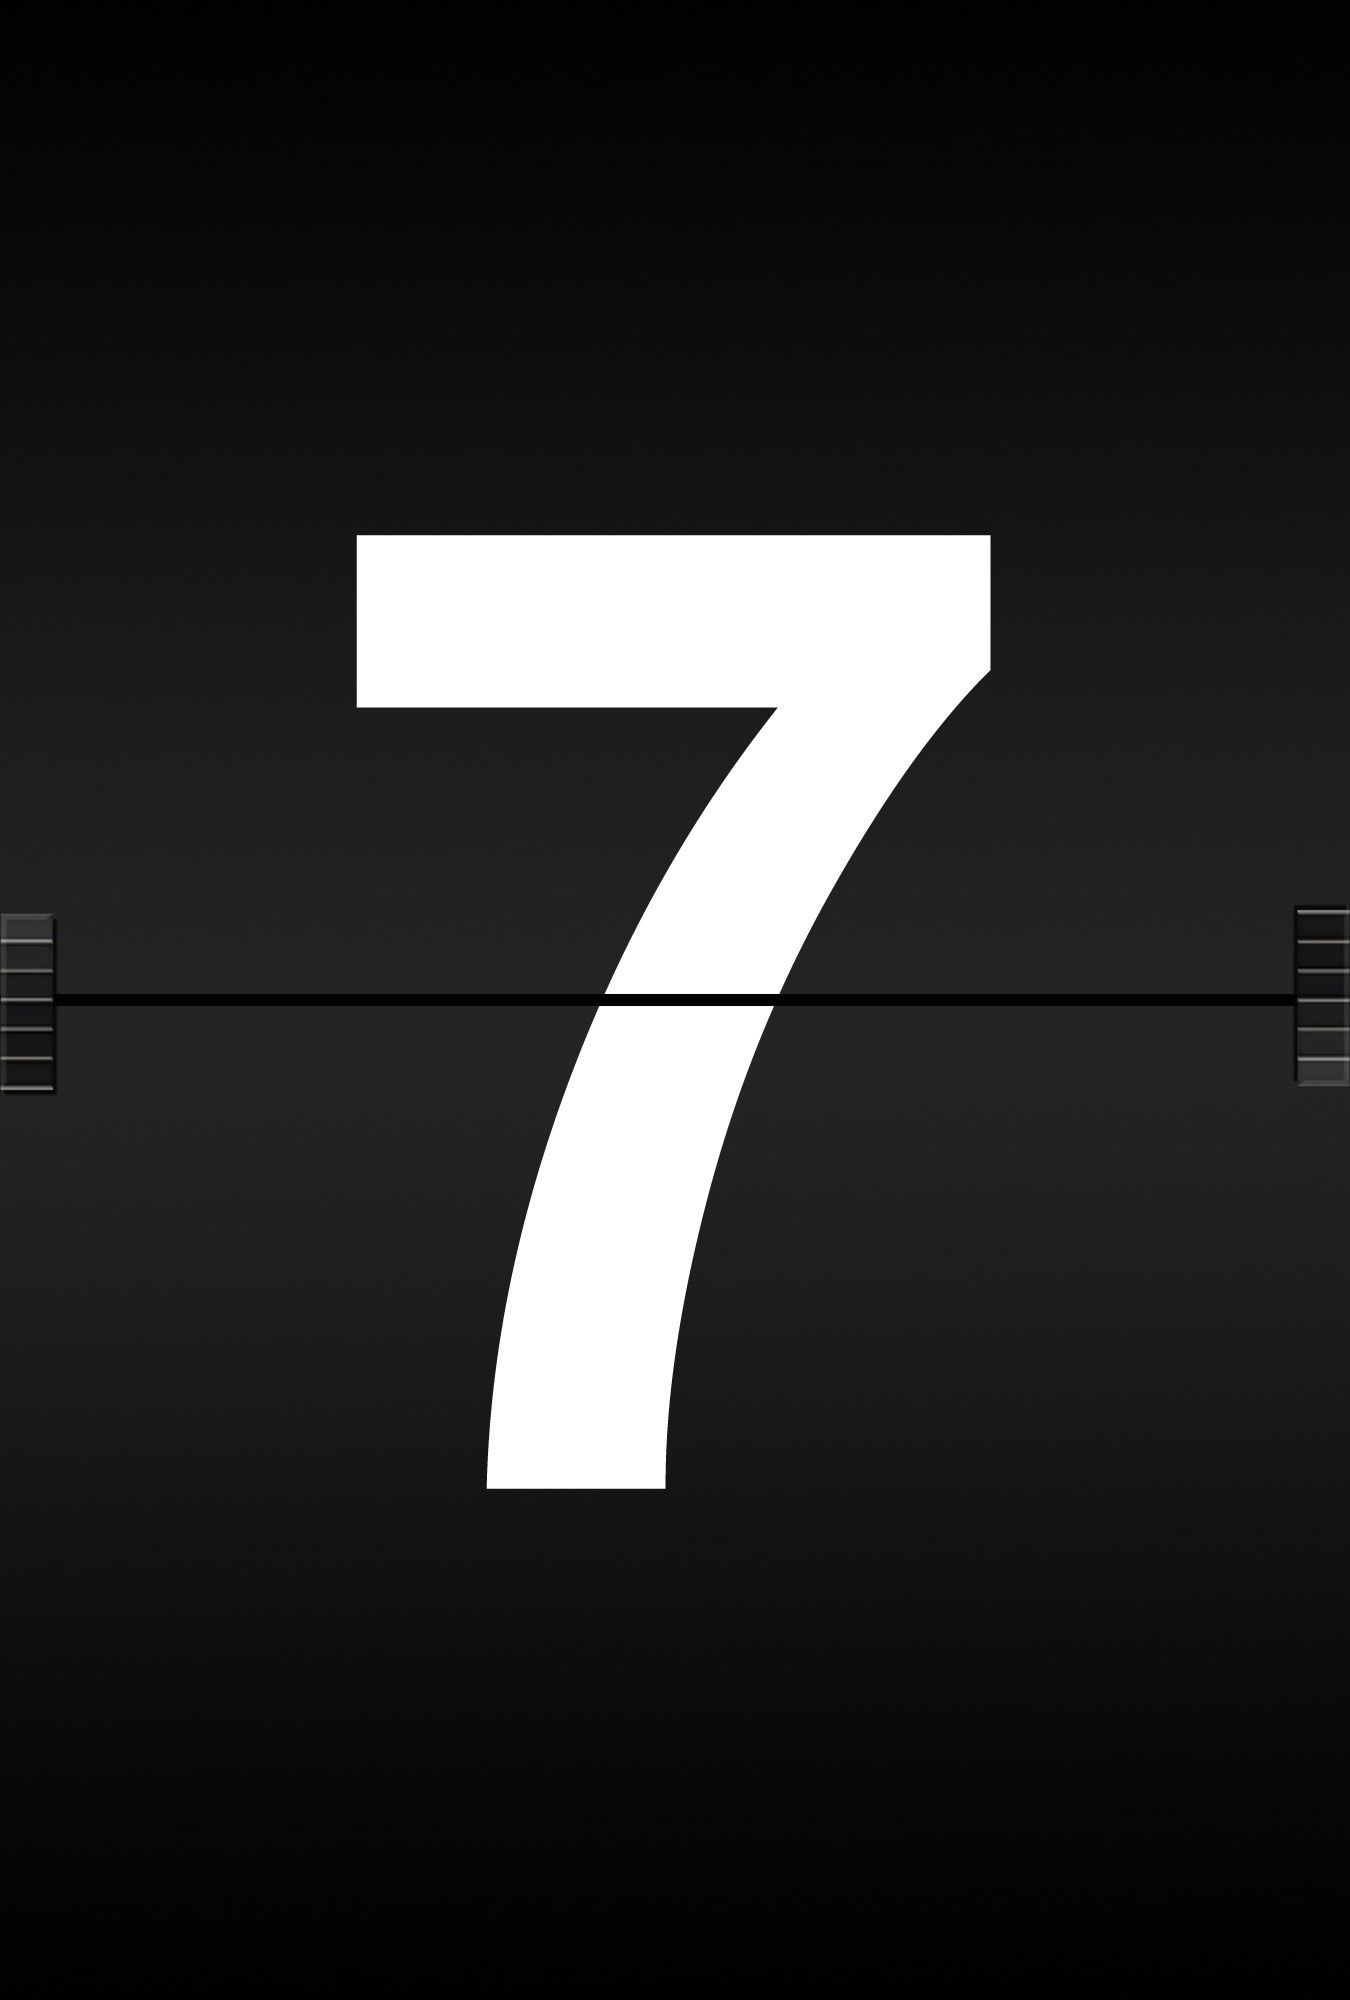 Number 7 Wallpapers   Top Number 7 Backgrounds   WallpaperAccess 1350x2000